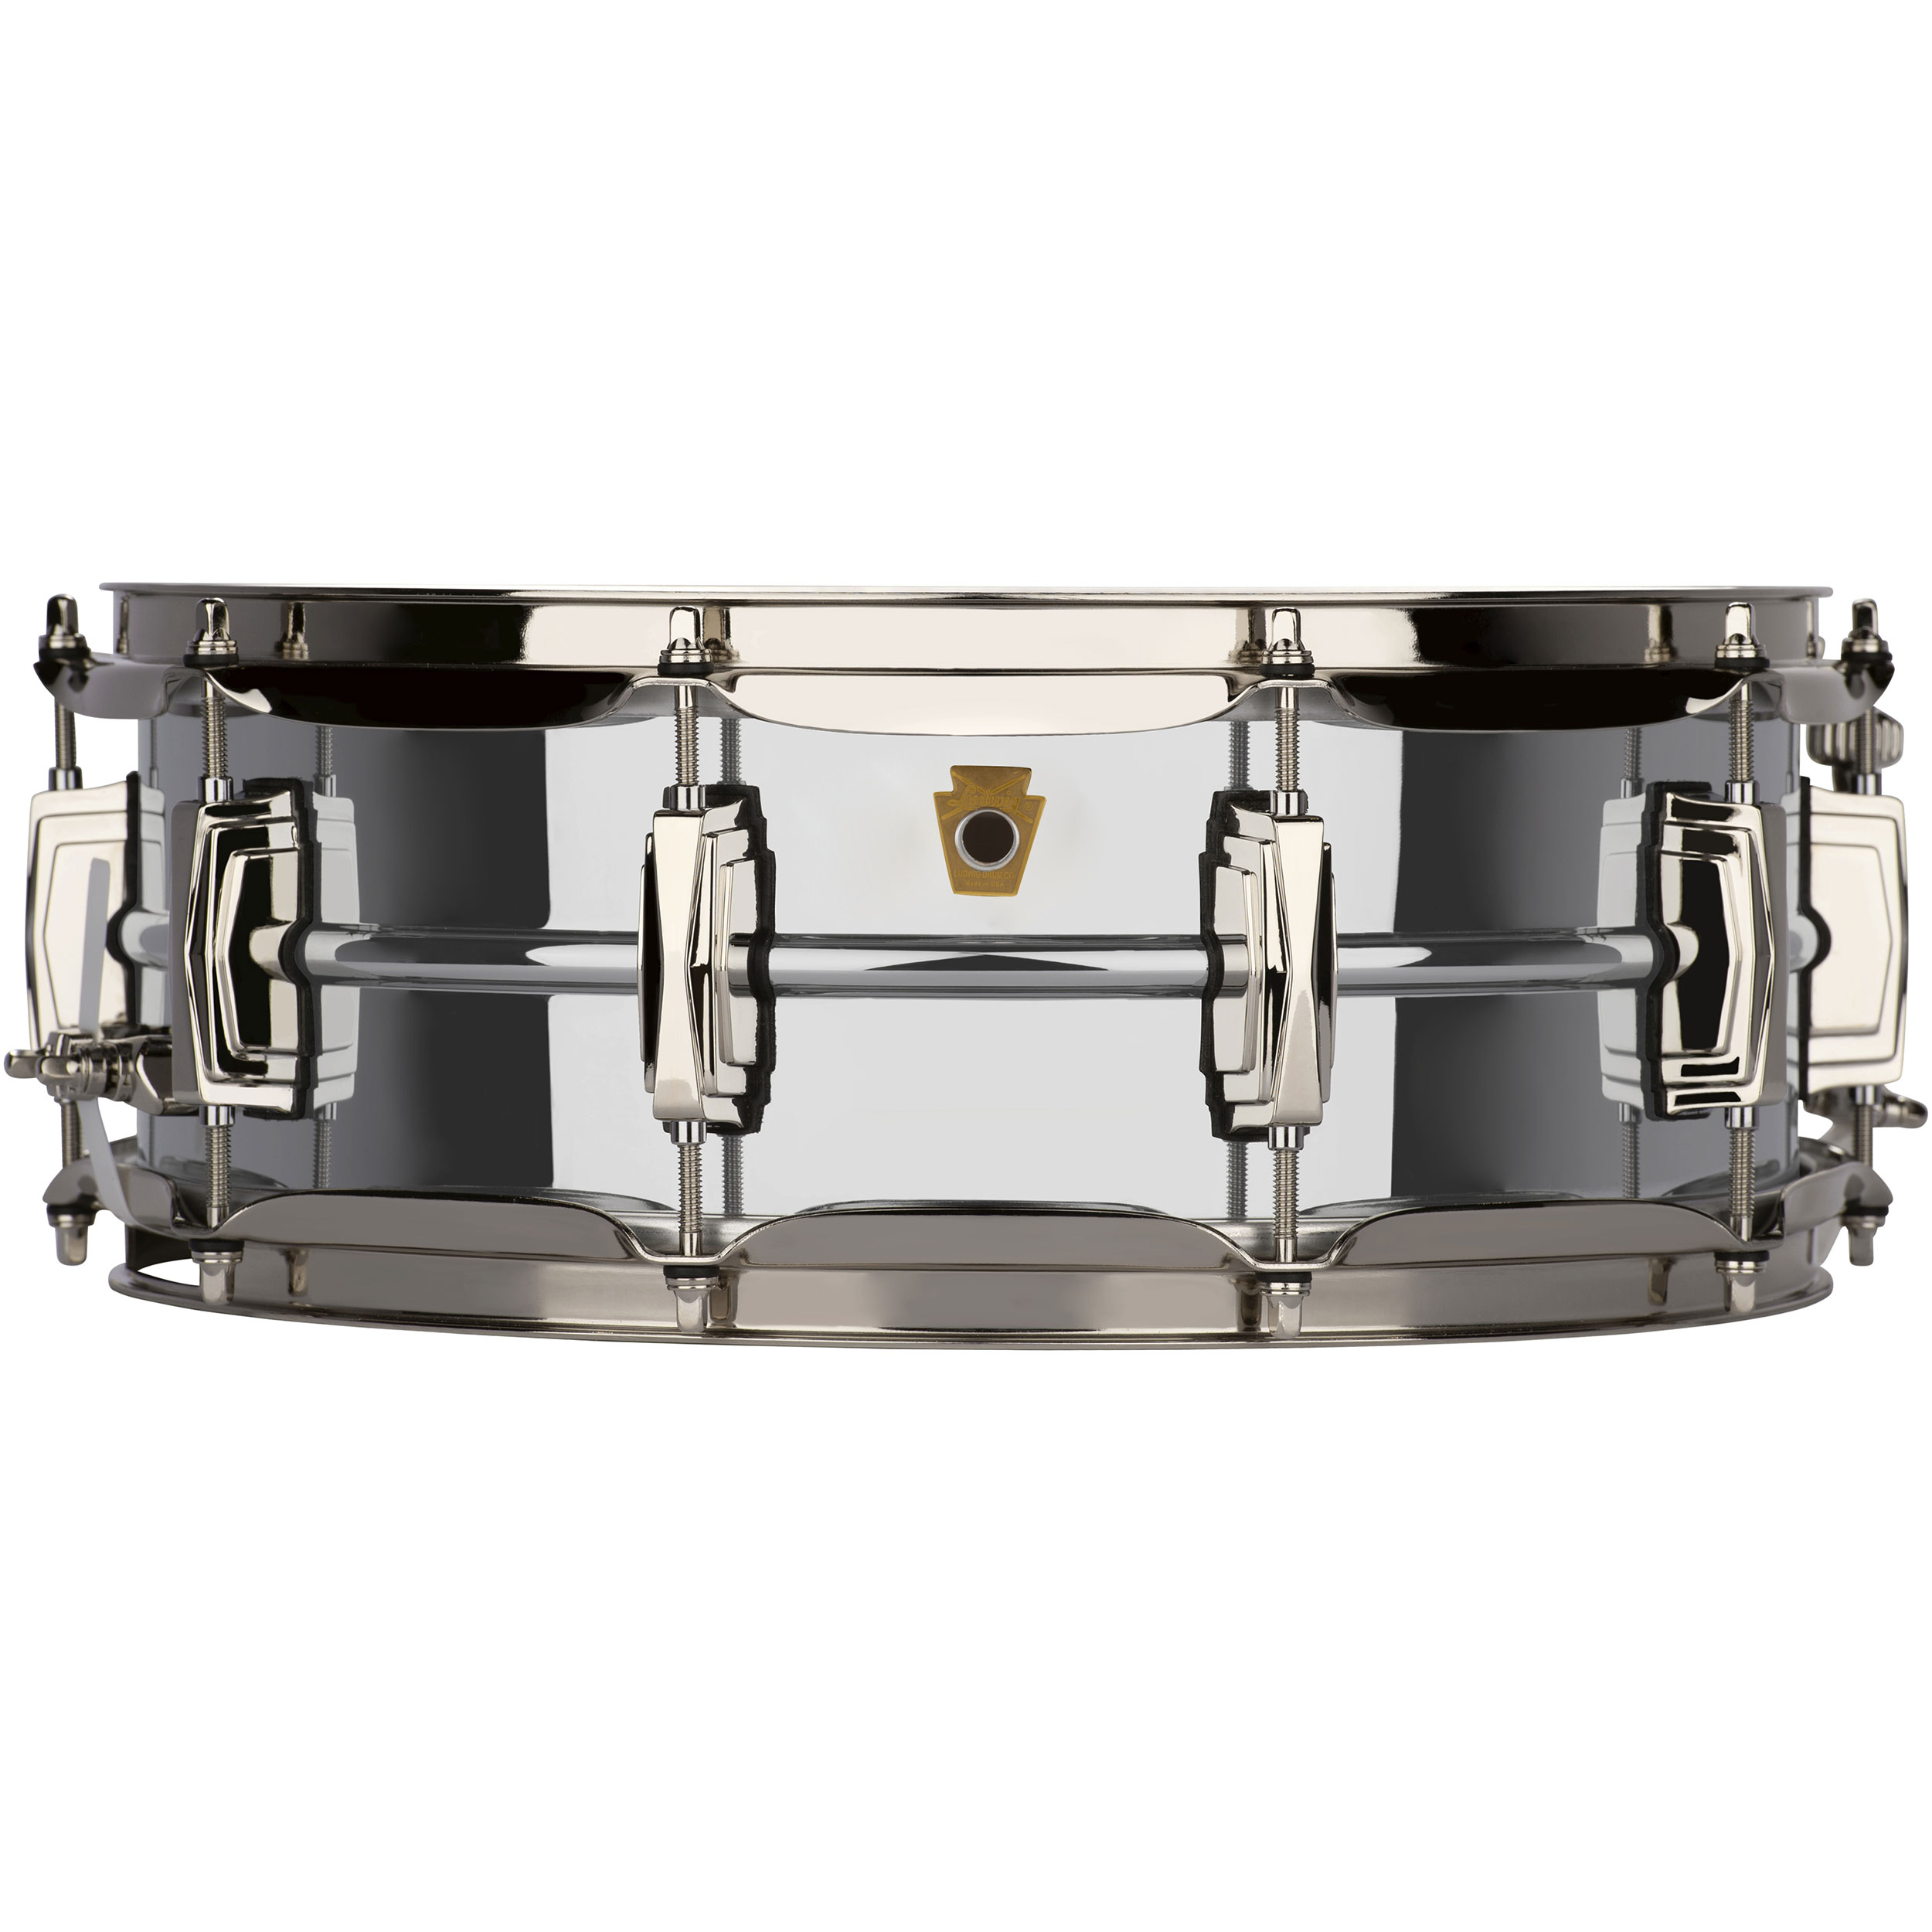 "Ludwig 5"" x 14"" Chrome Plated Brass ""Super Ludwig"" Snare Drum with Nickel Hardware"